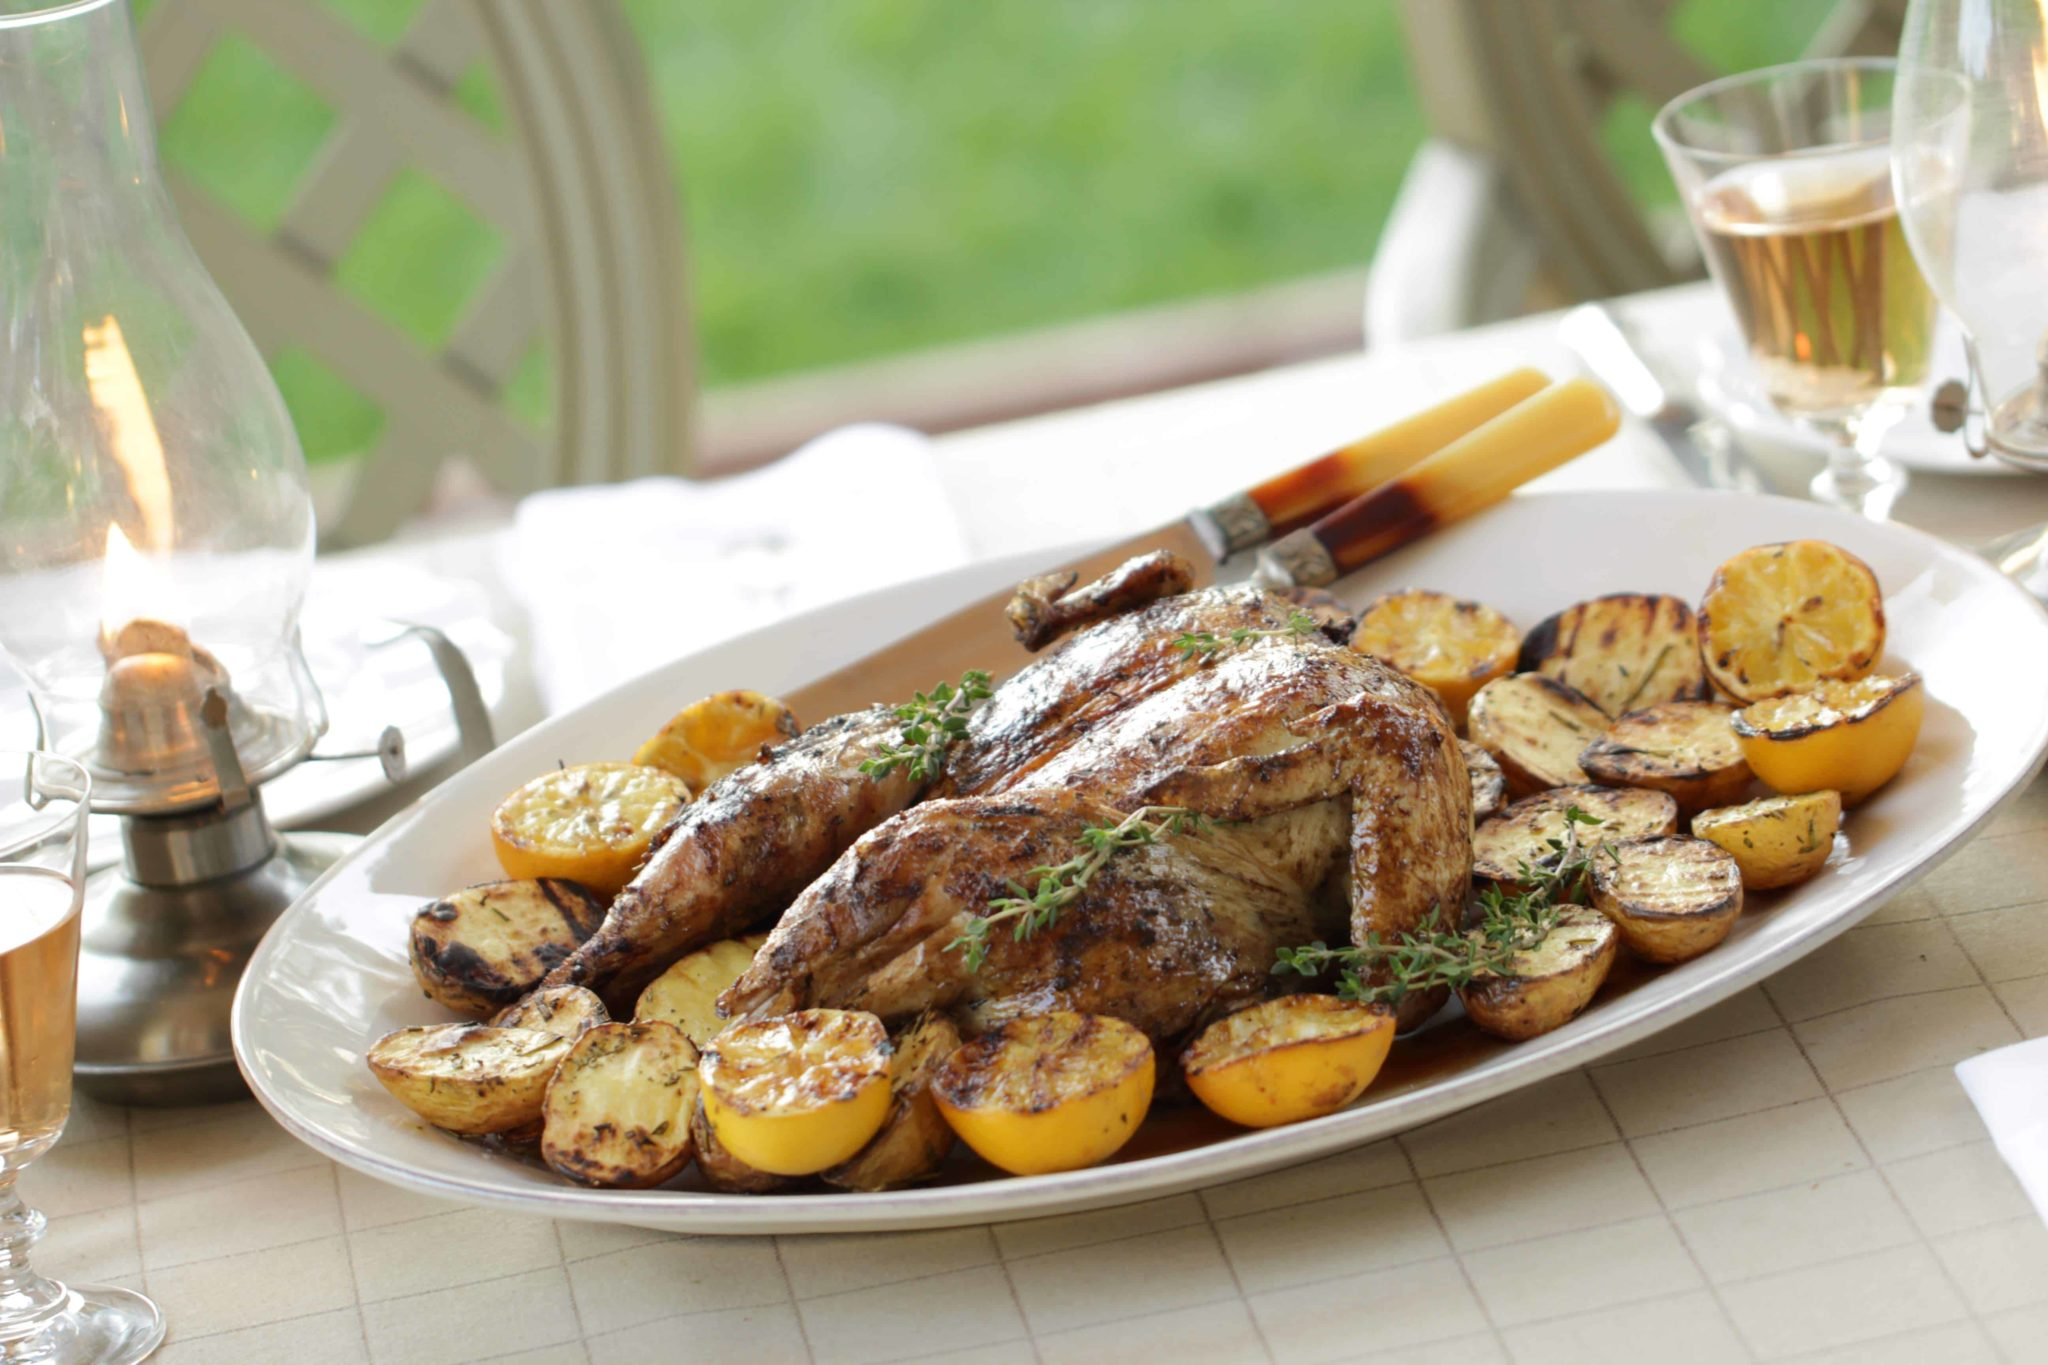 Grilled Lemon Thyme Chicken with Rosemary Potatoes